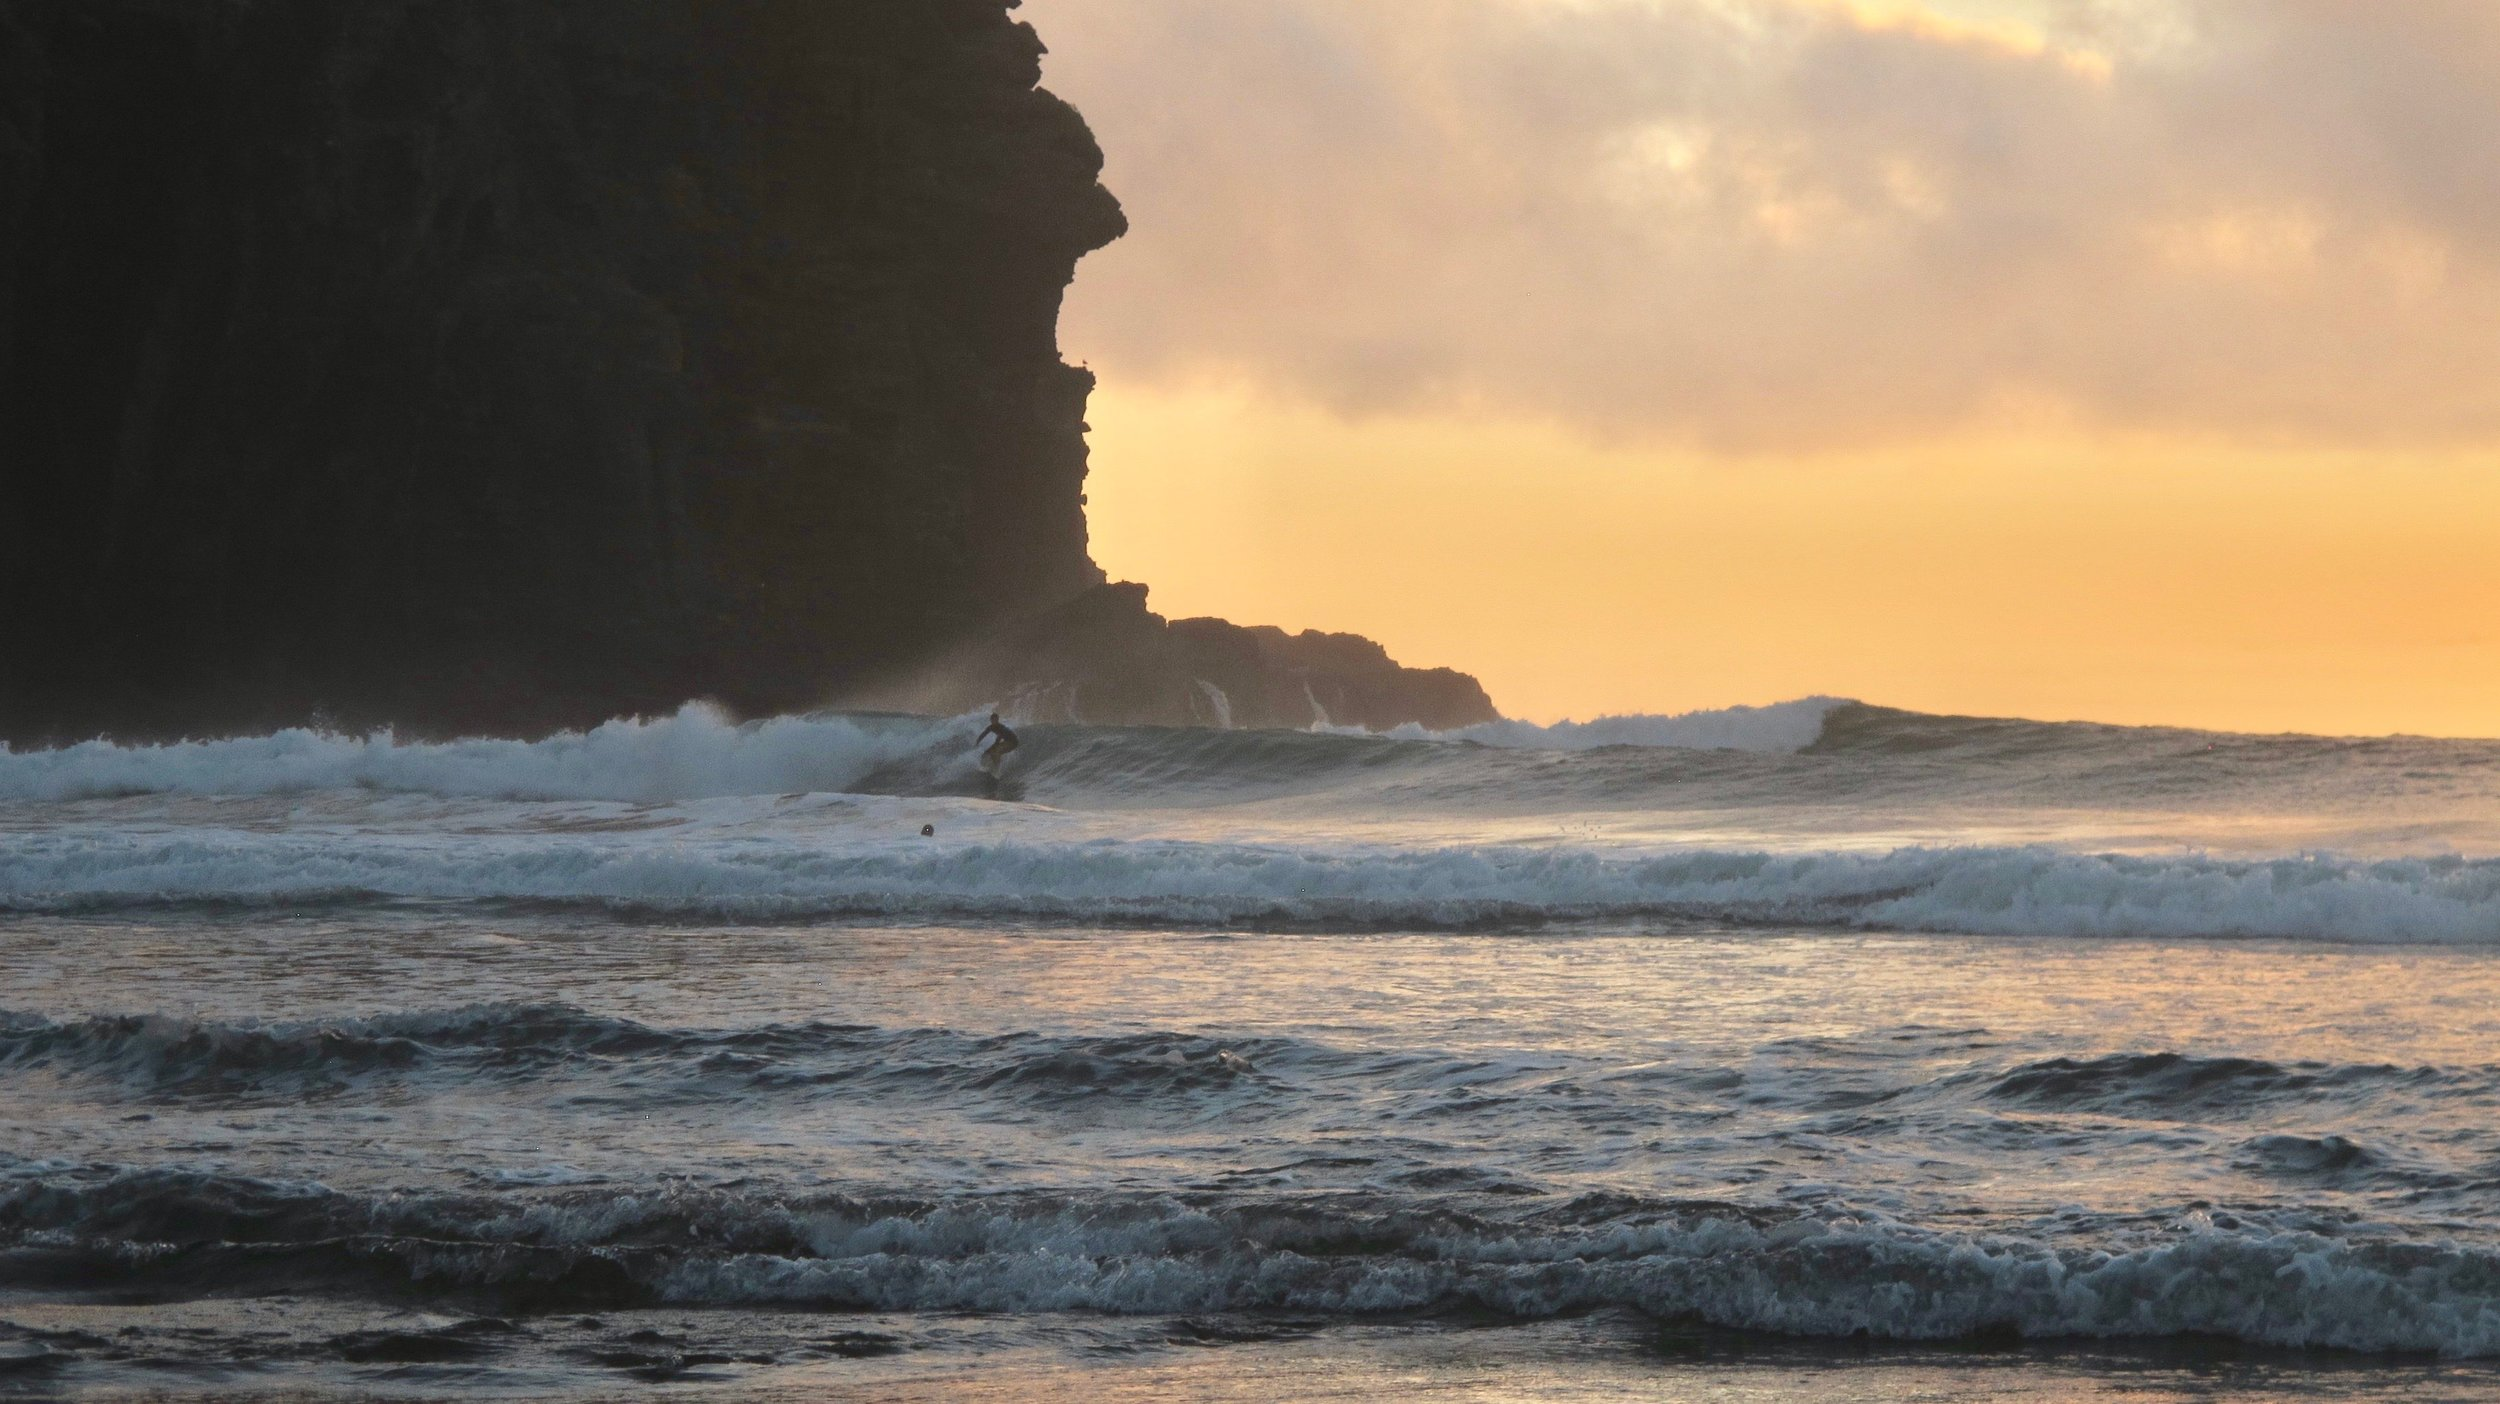 Surfing in Piha - New Zealand